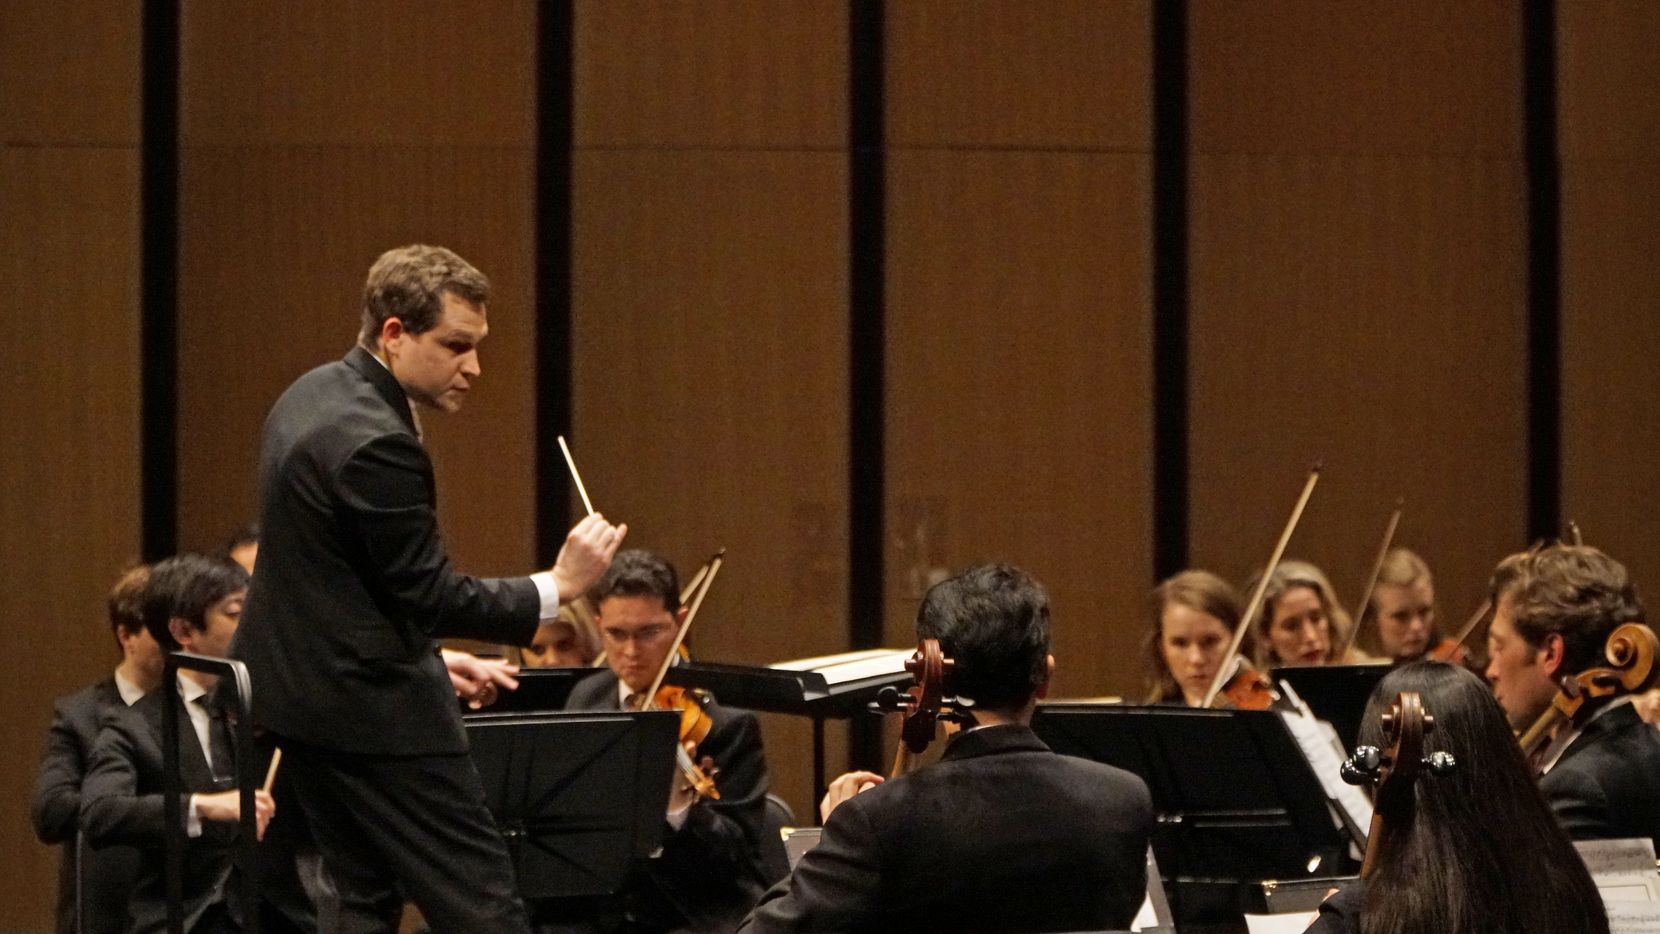 Artistic director Richard McKay conducts the Dallas Chamber Symphony at Moody Performance Hall in Dallas on Feb. 11, 2020.